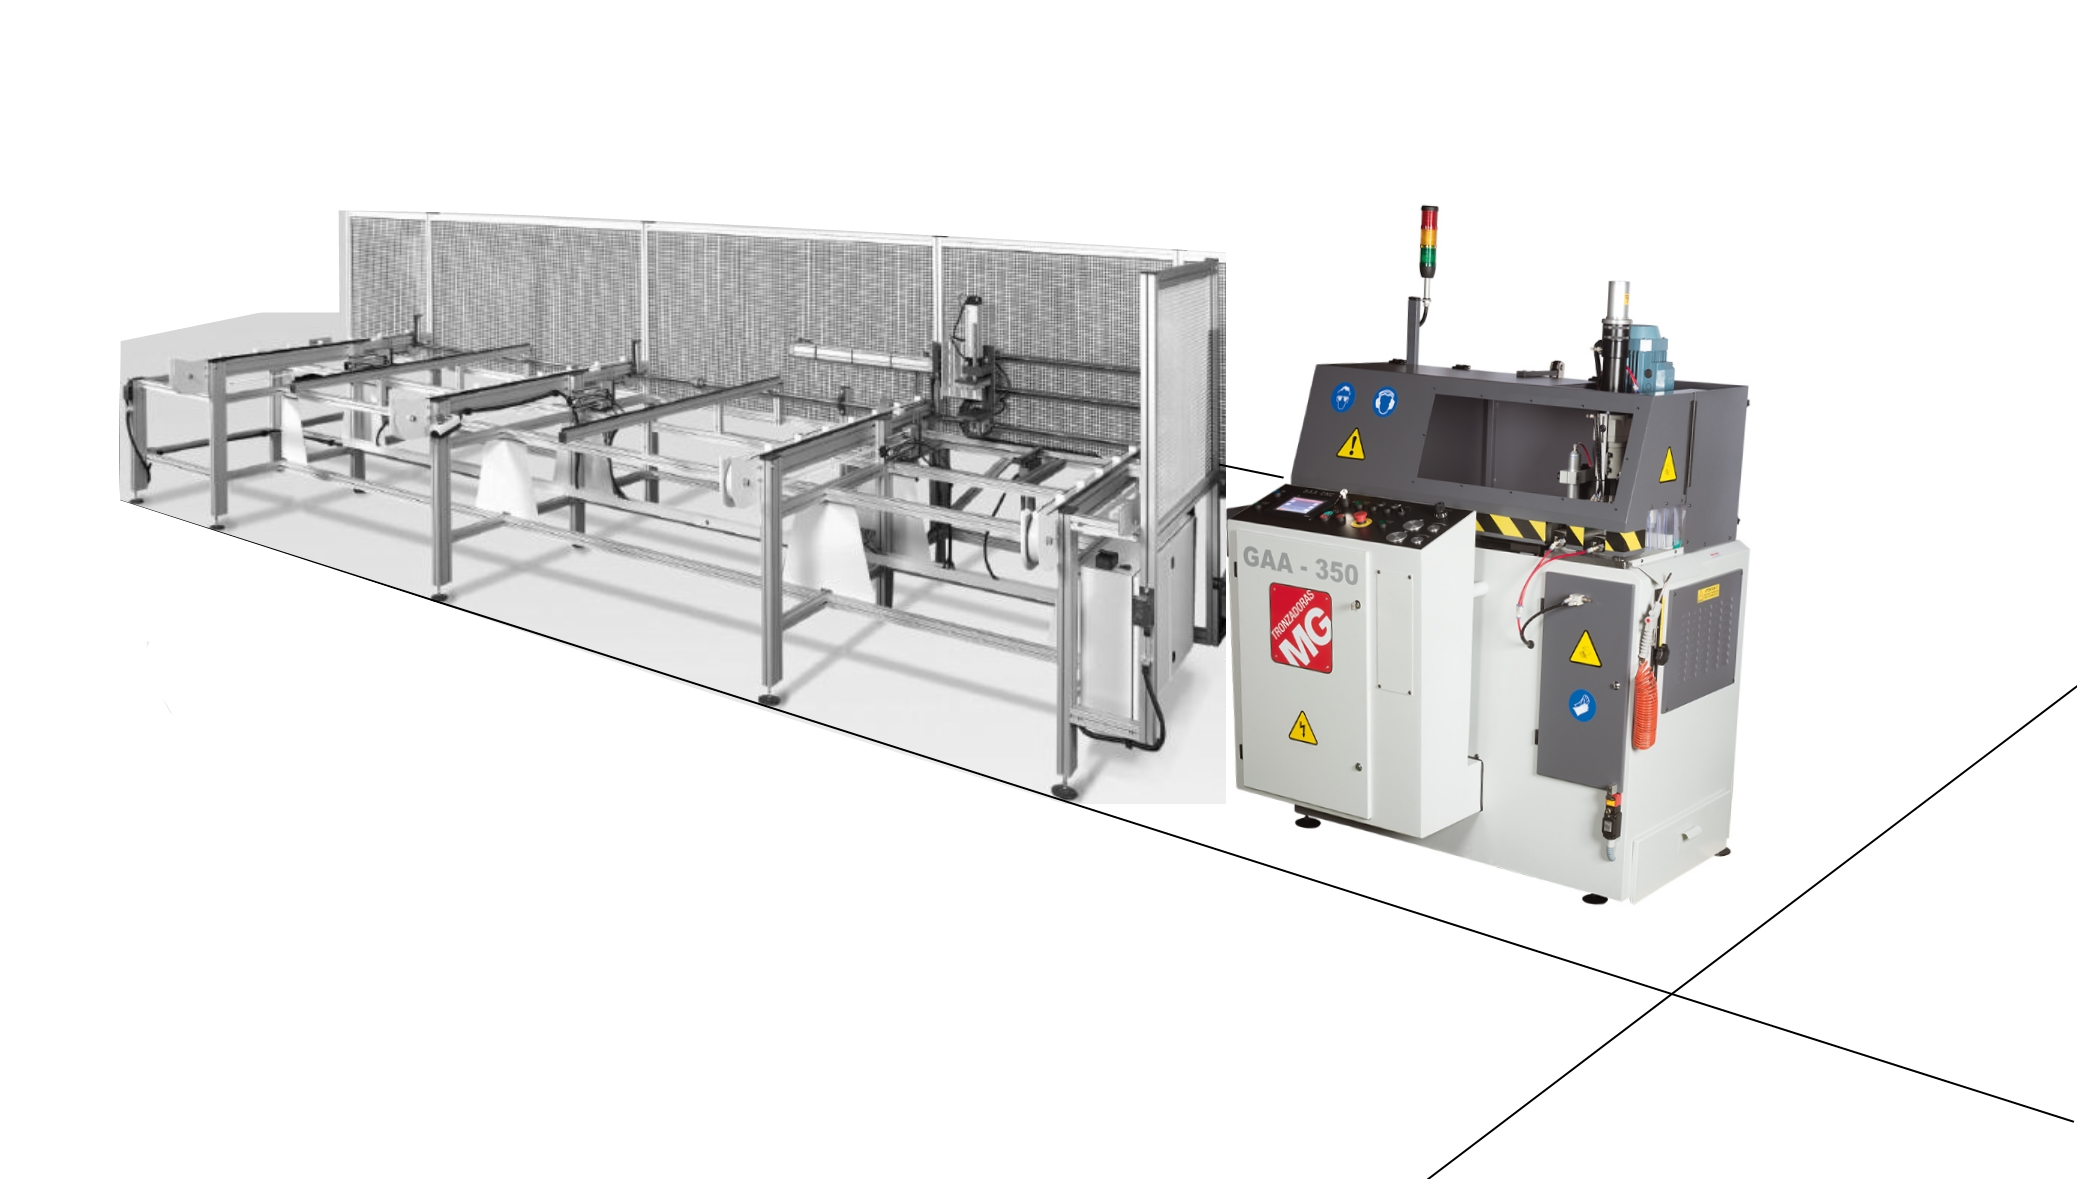 PROFILE MAGAZINE FEEDING GAA CNC